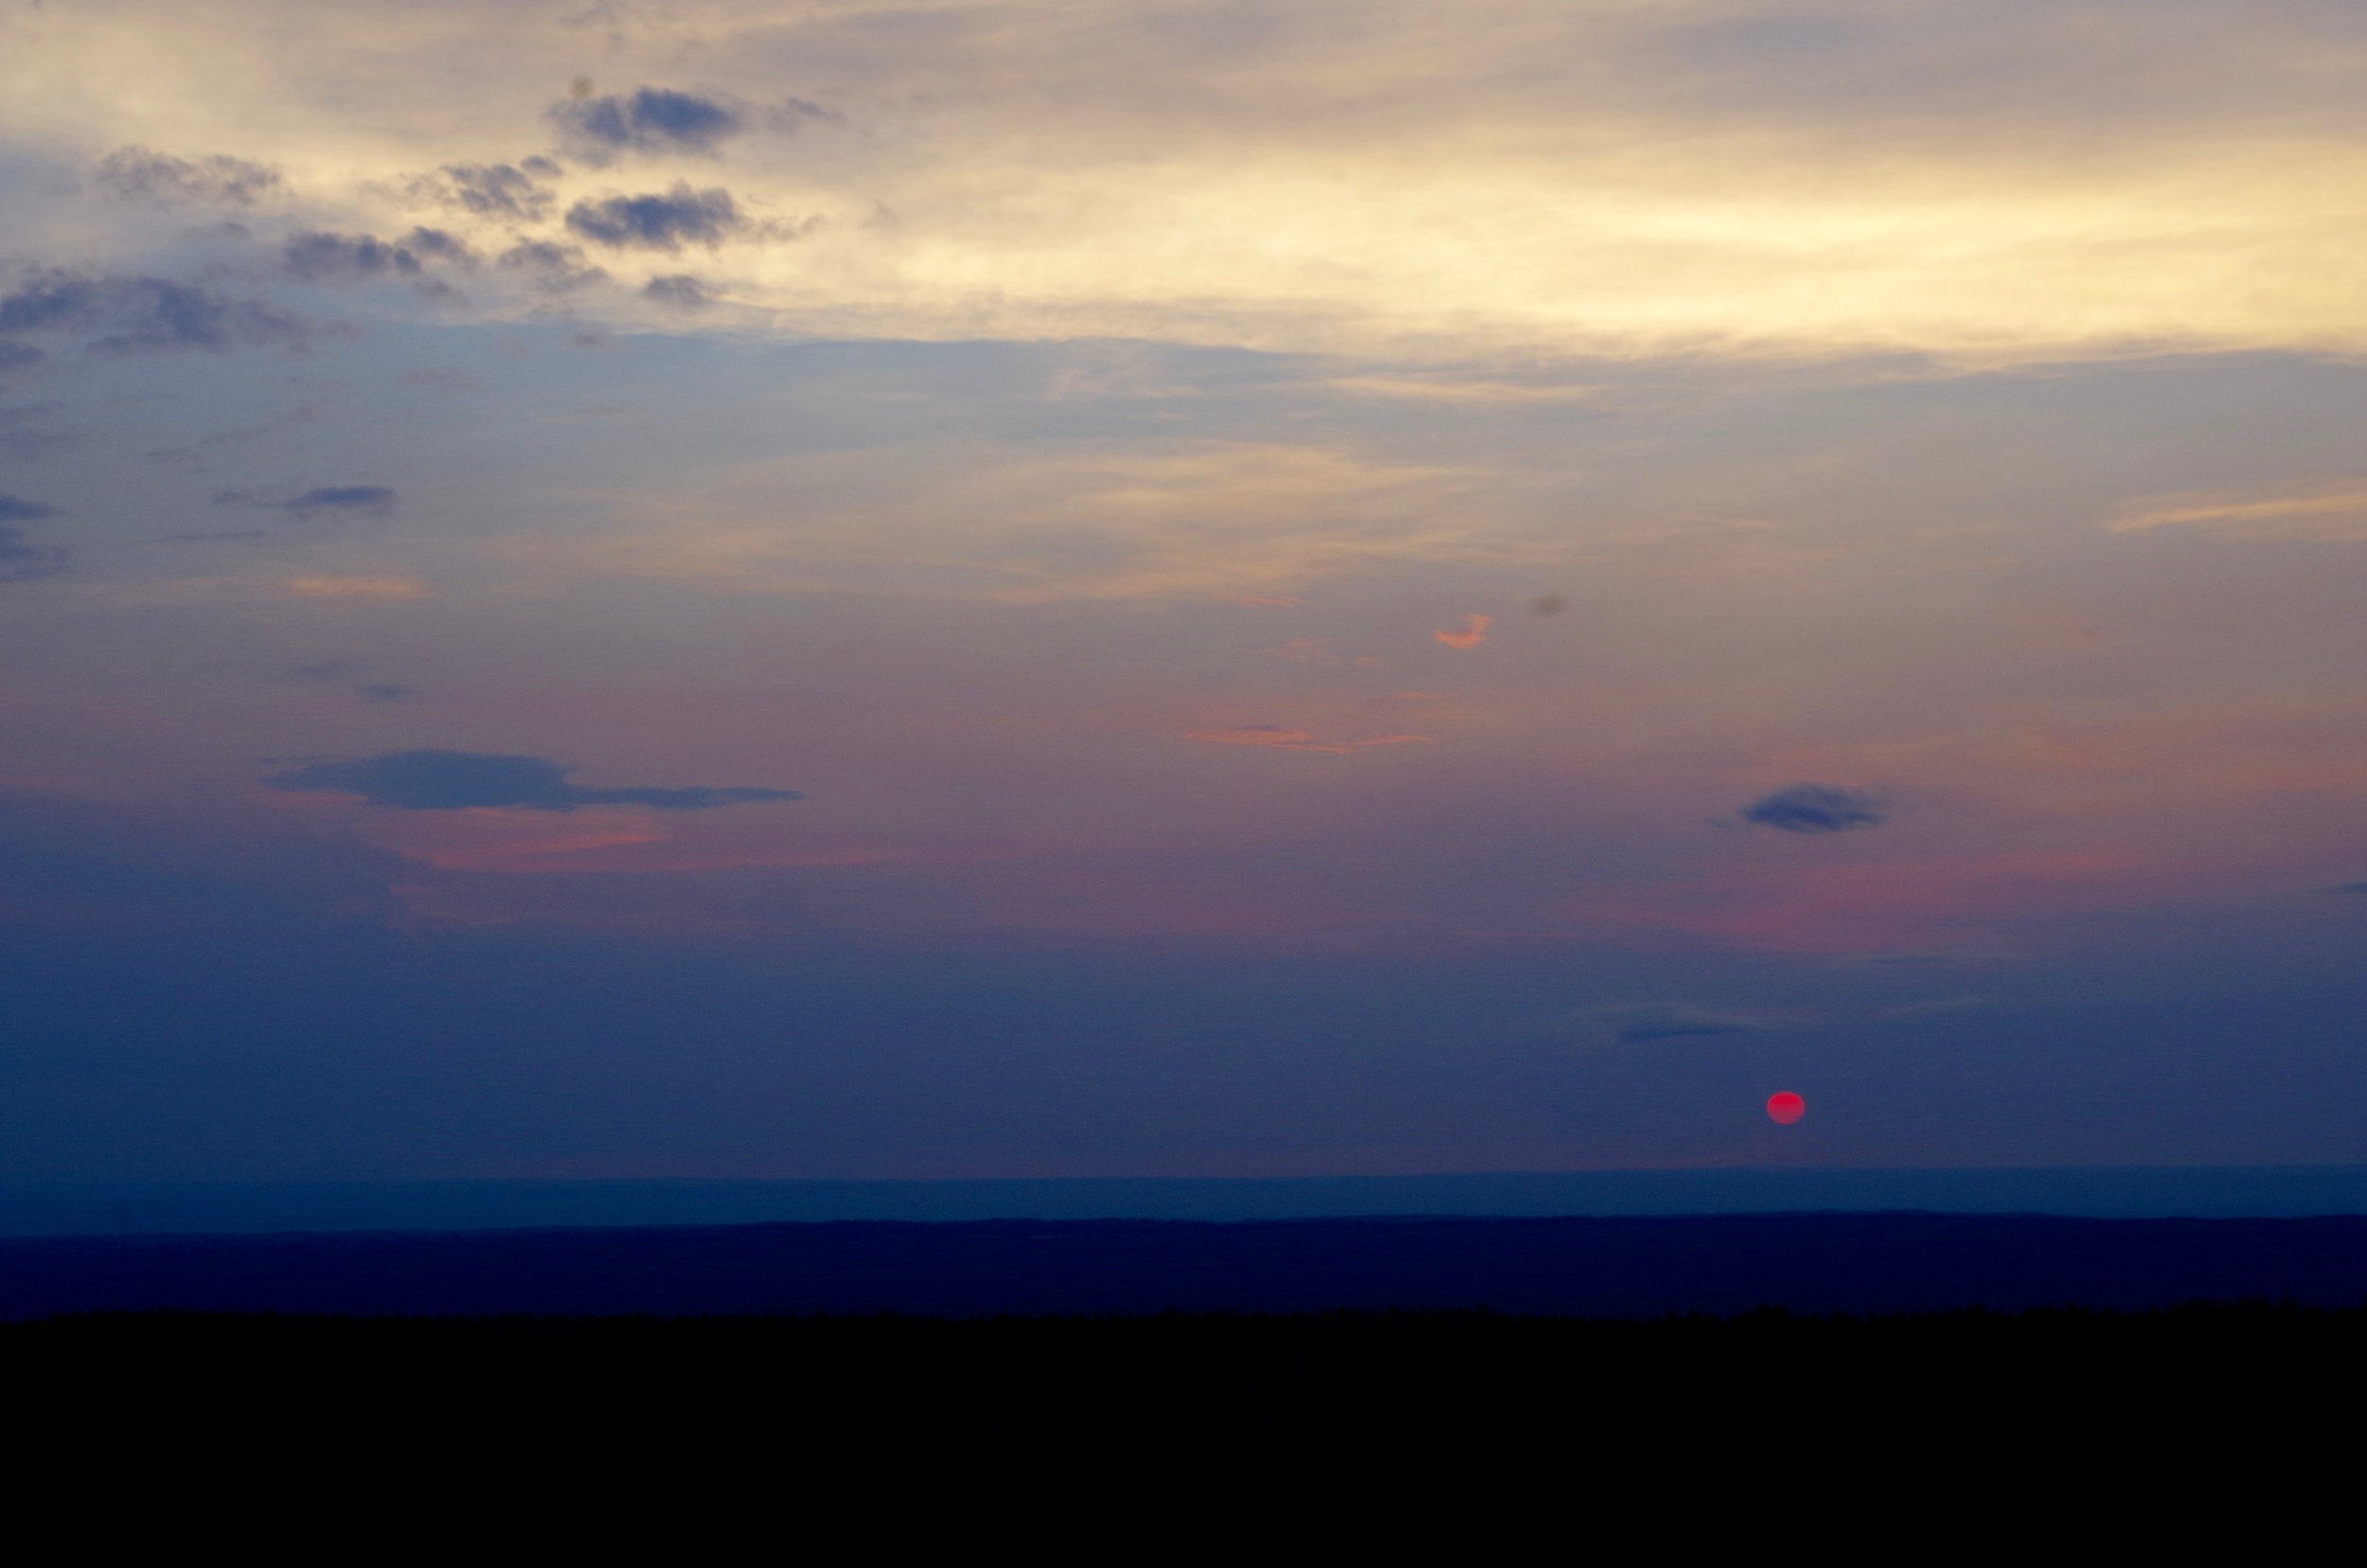 The solstice sun setting in the west. (Photo Credit: Trina Moyles)